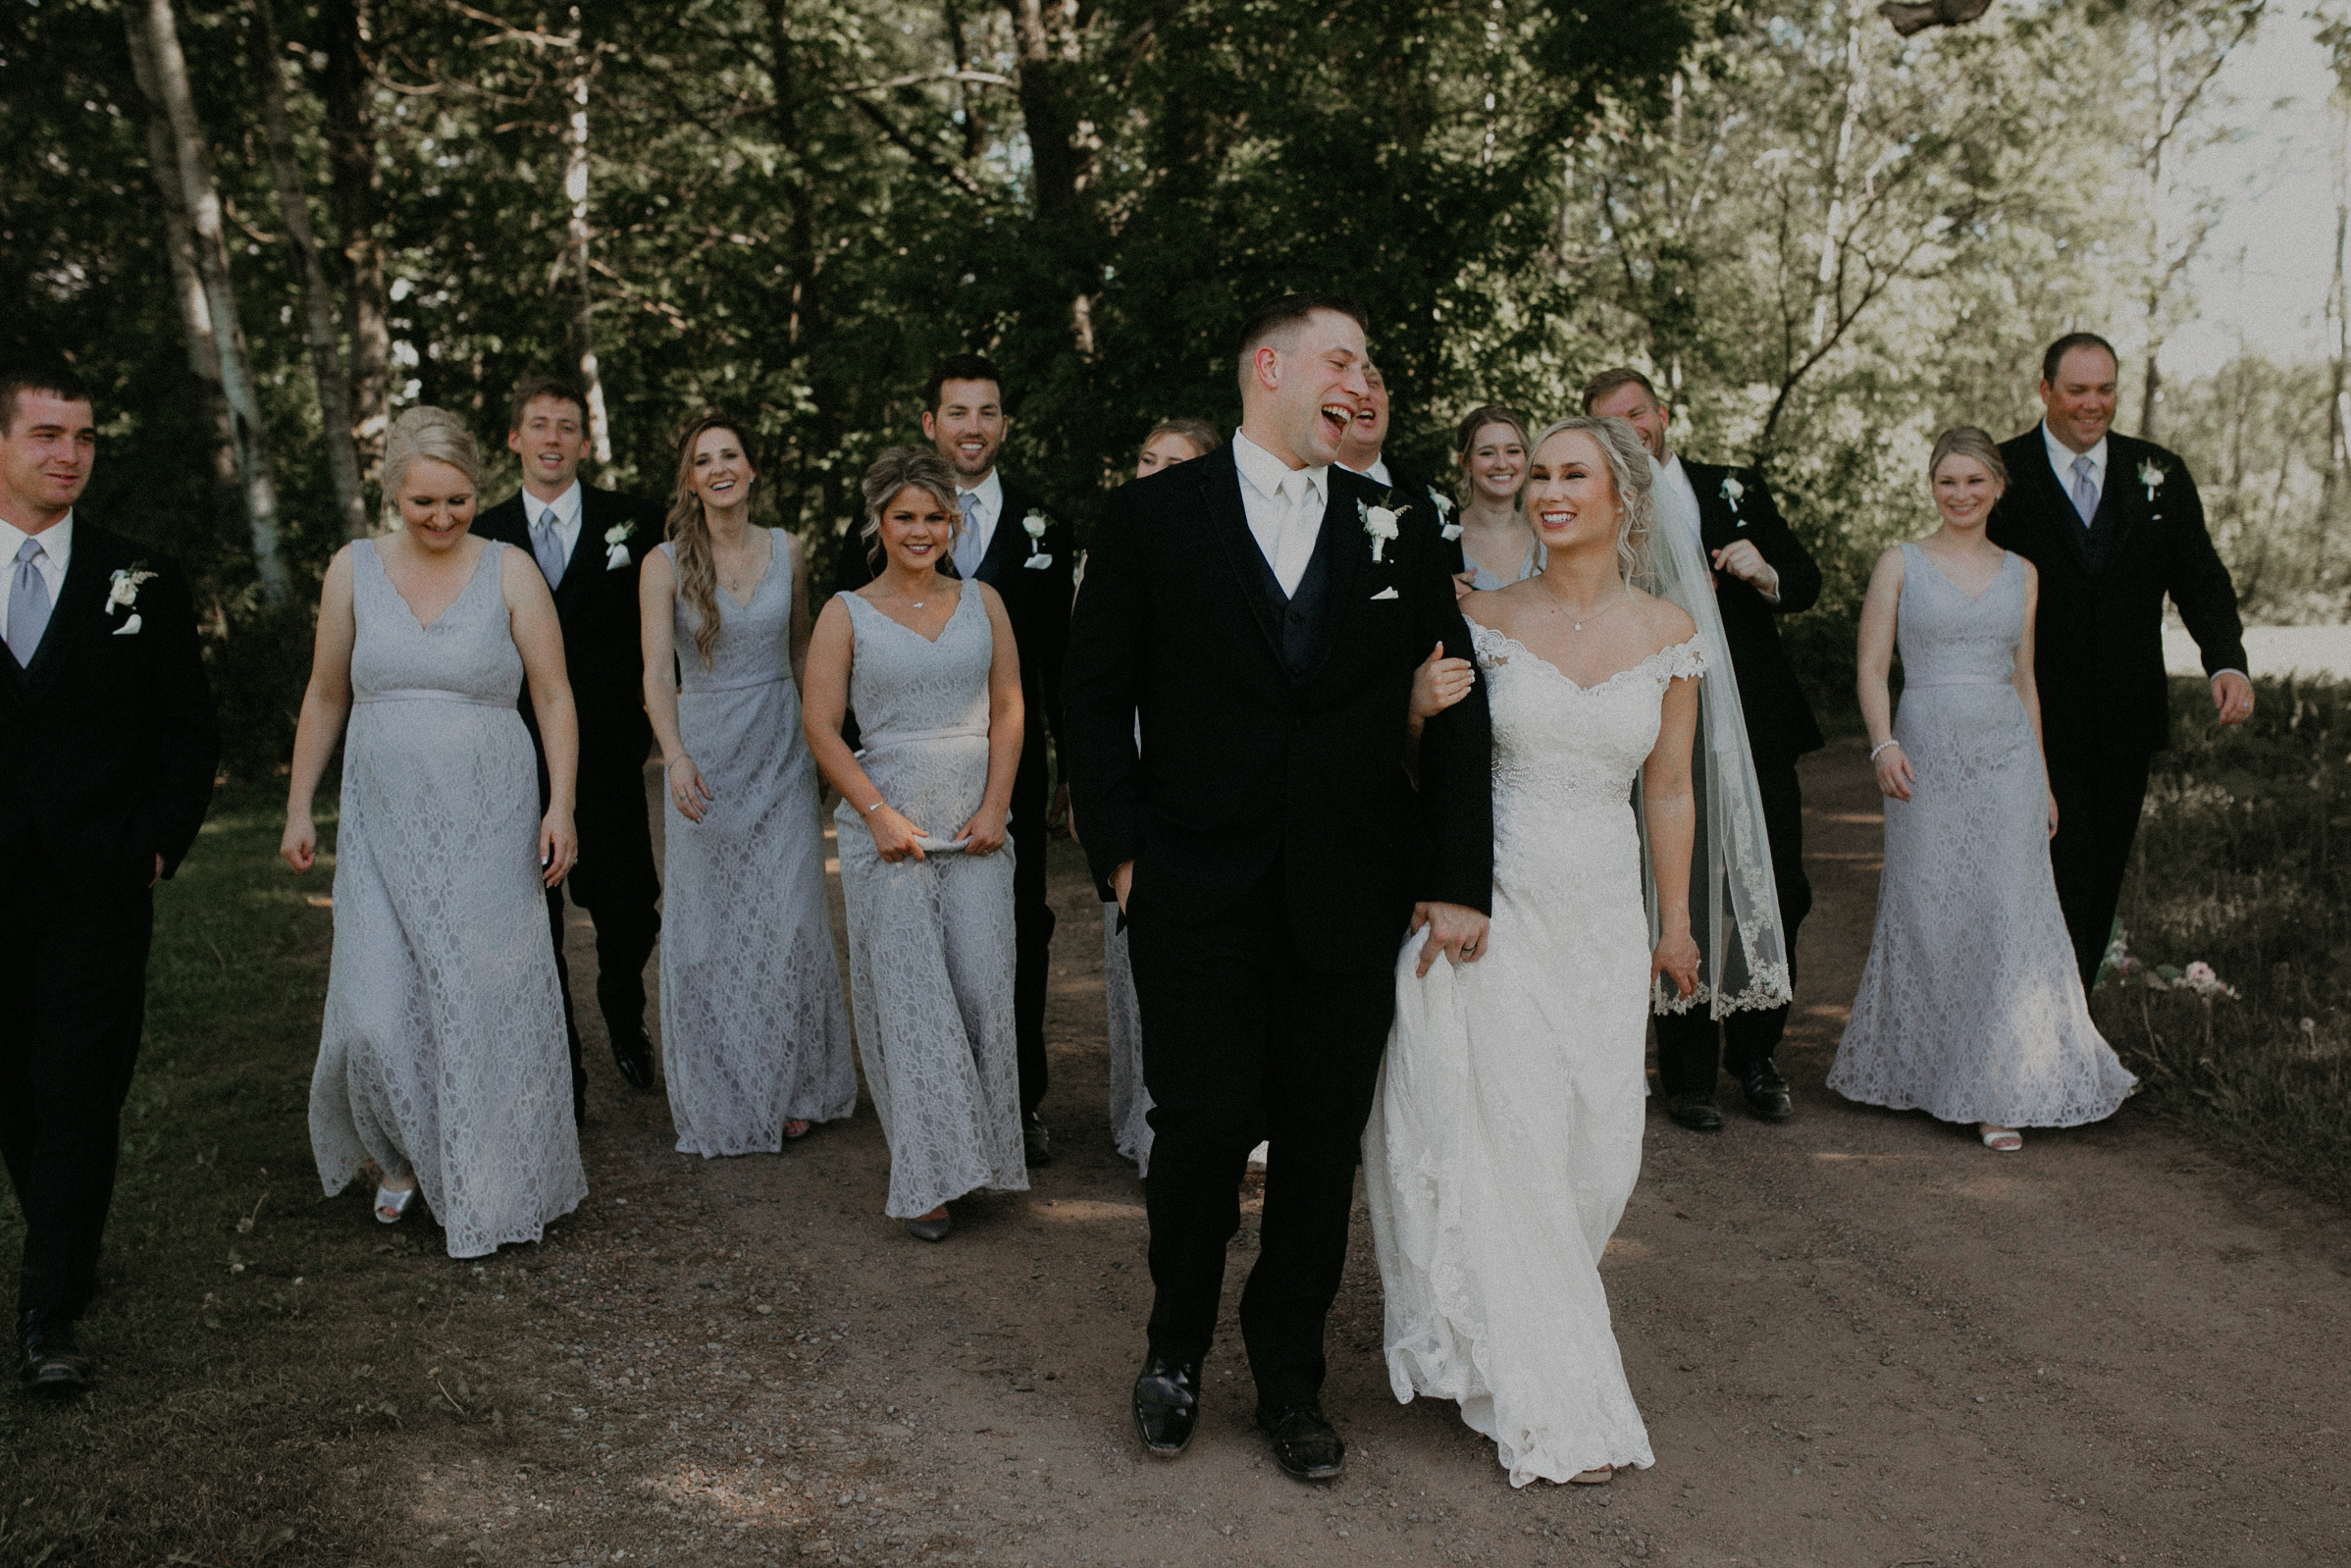 a Marshfield WI wedding party at RiverEdge Golf Club photographed by Andrea Wagner